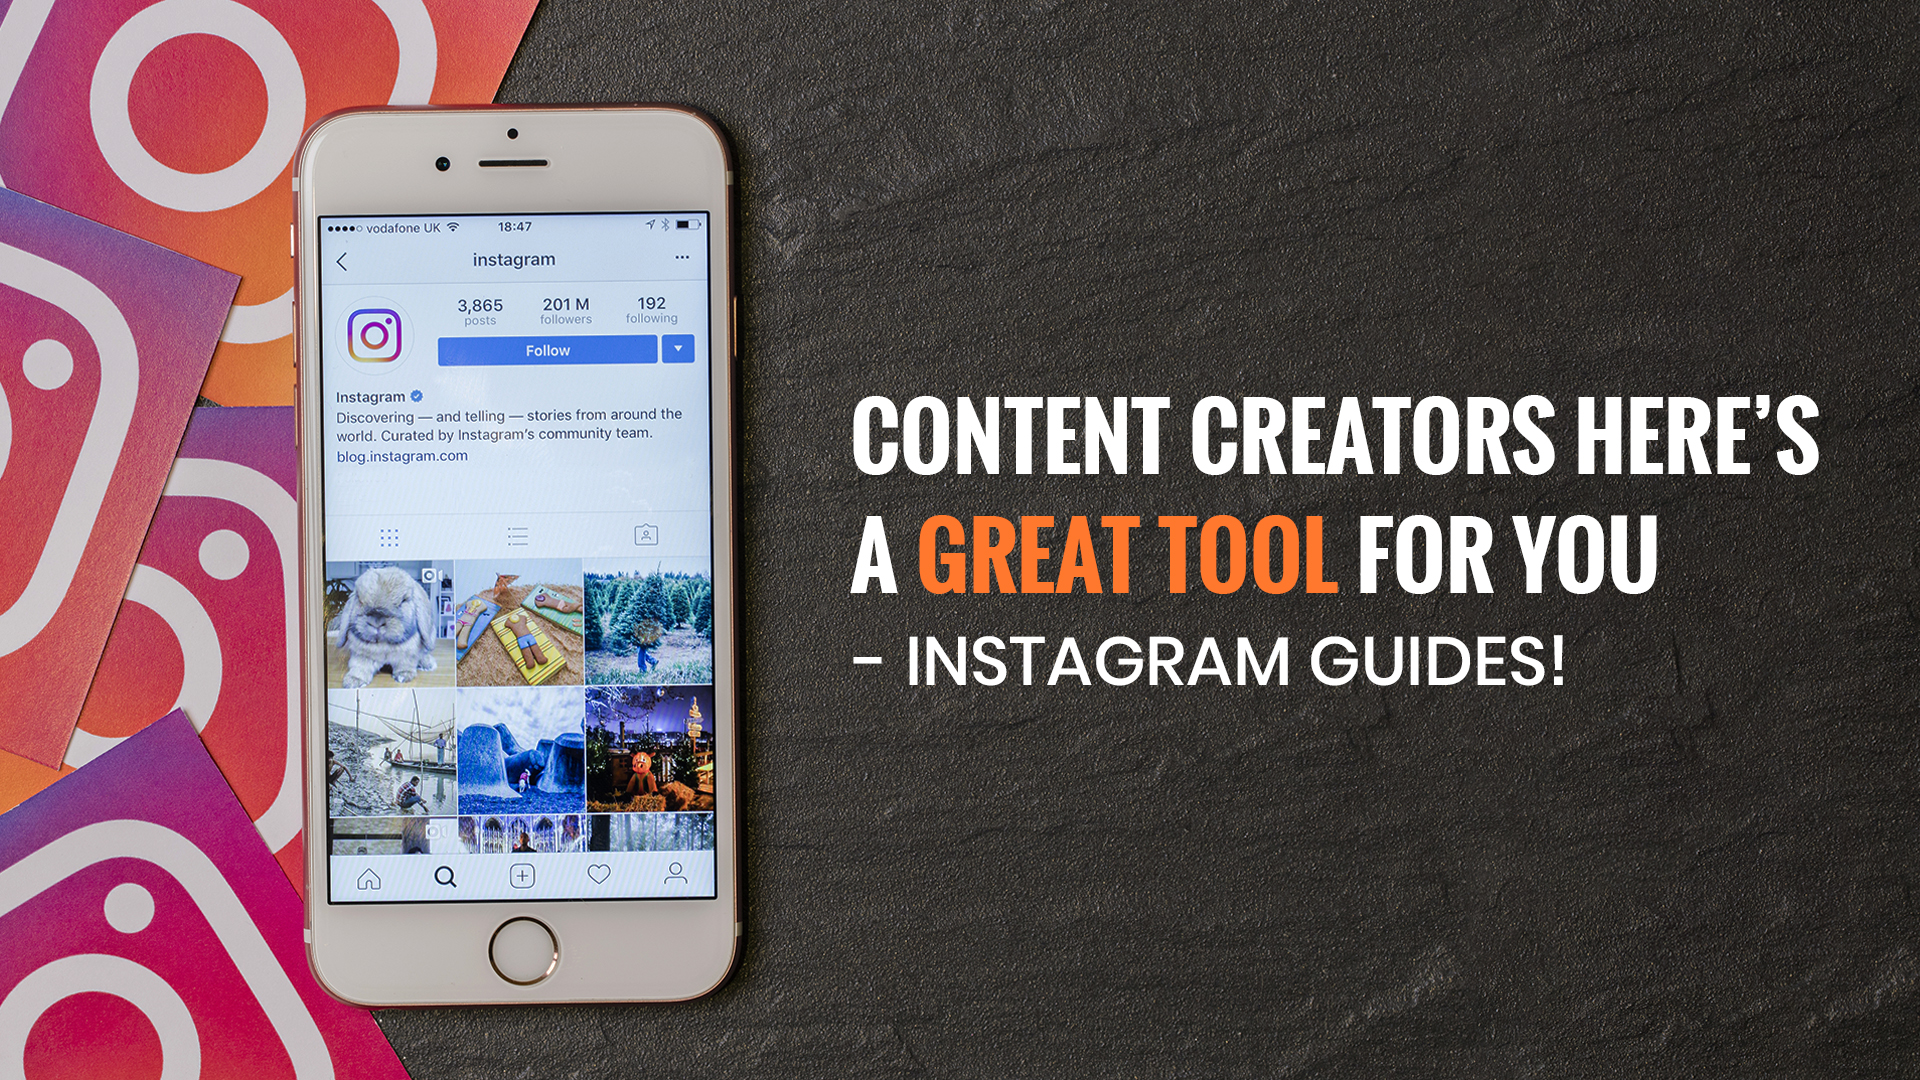 Content Creators Here's A Great Tool For You